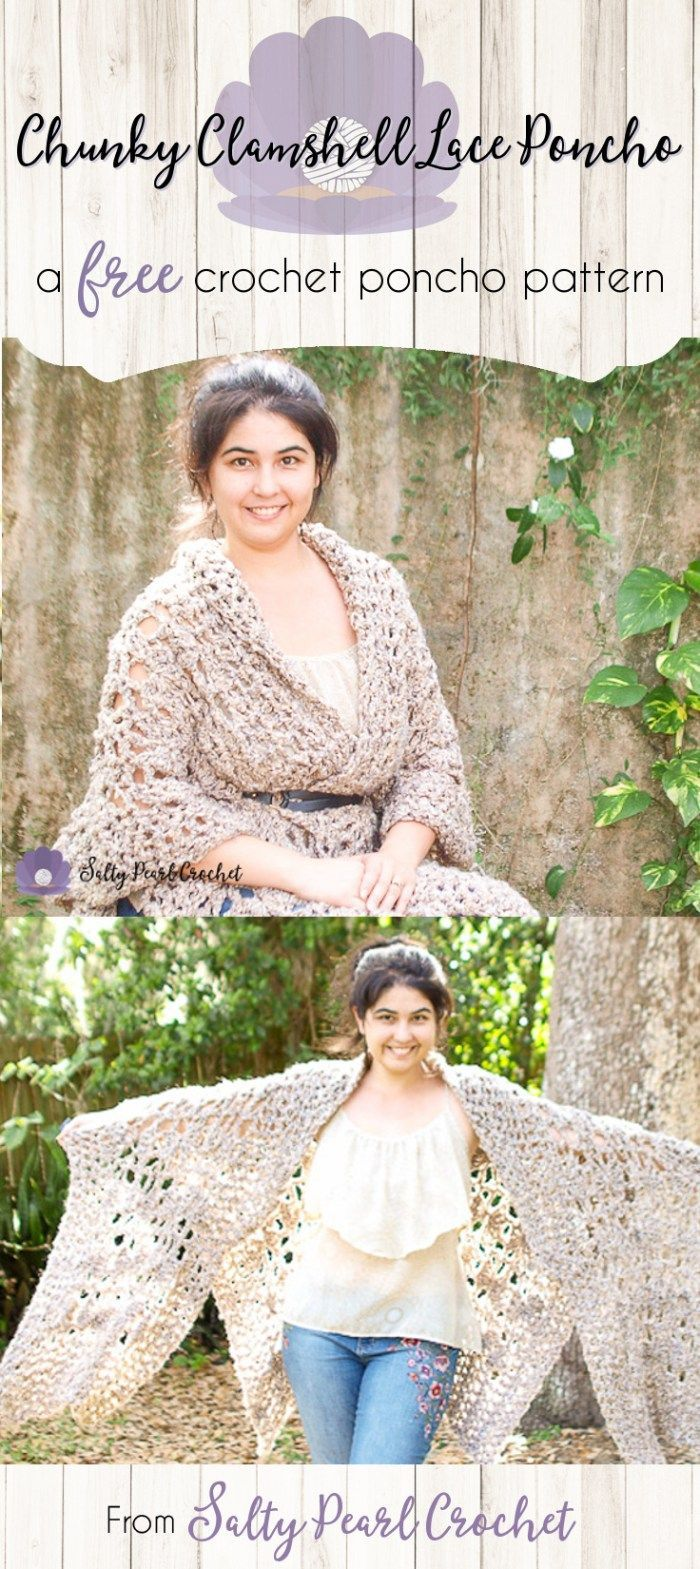 Wedding dress patterns free  Quick Crochet Poncho Free Pattern the Chunky Clamshell Lace Poncho